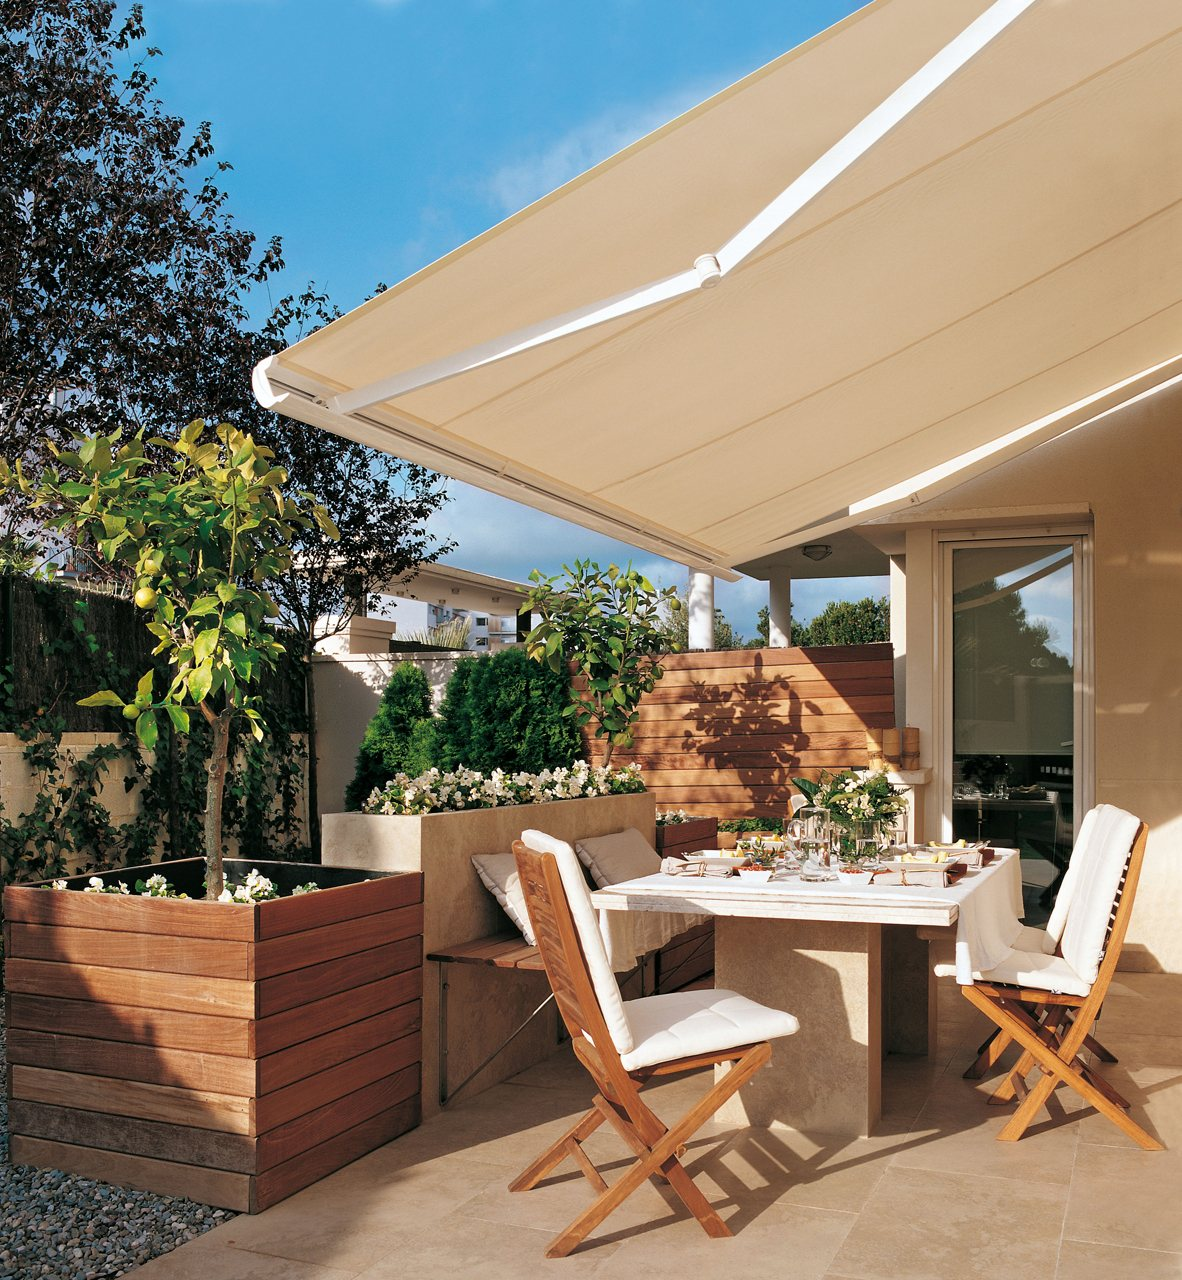 terraza con un toldo abierto 1182x1280 - The perfect terrace: How to decorate?